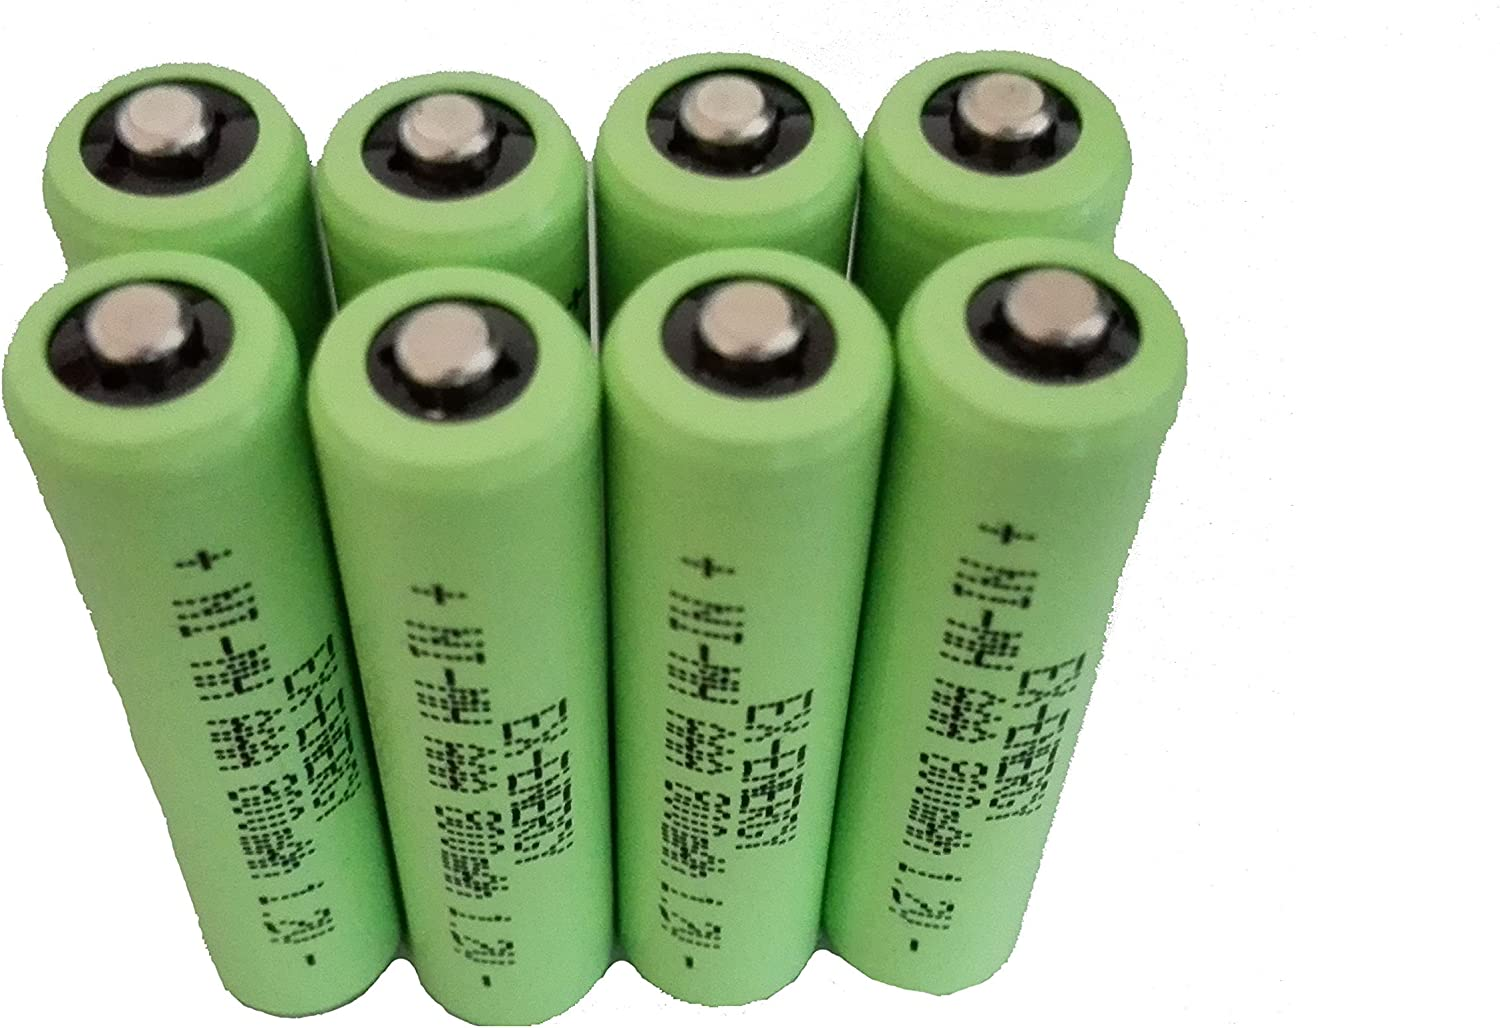 EX-ENERGY AAA 1.2V 55% OFF 800mAh LSD Button Many popular brands top Rechargeable NiMH Batte